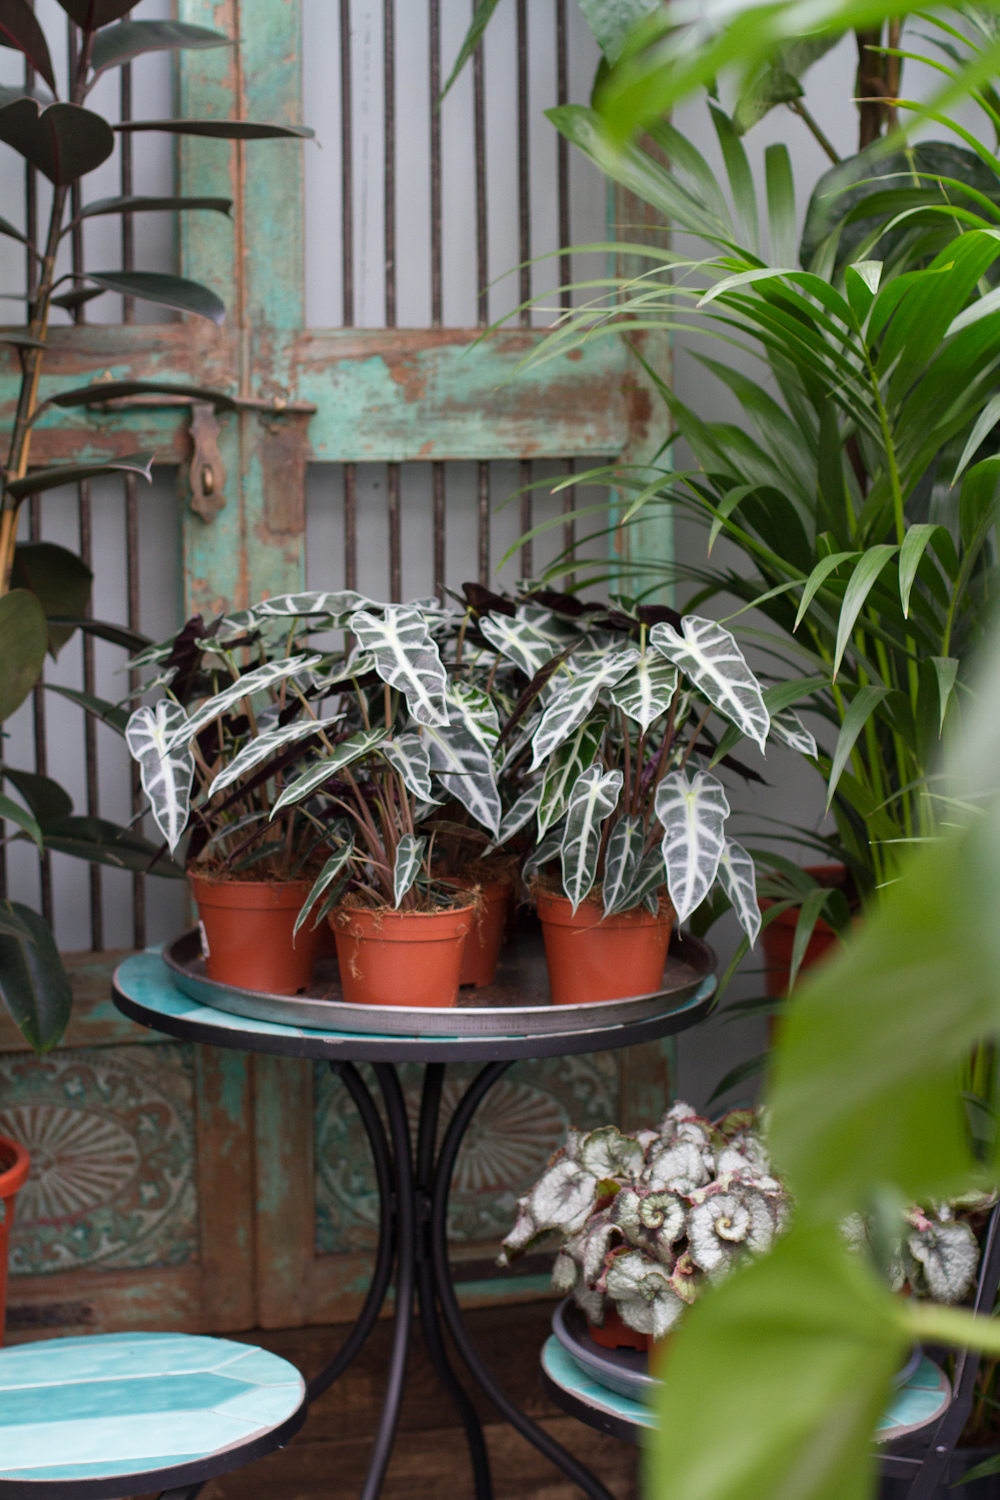 Houseplants and Shop Products